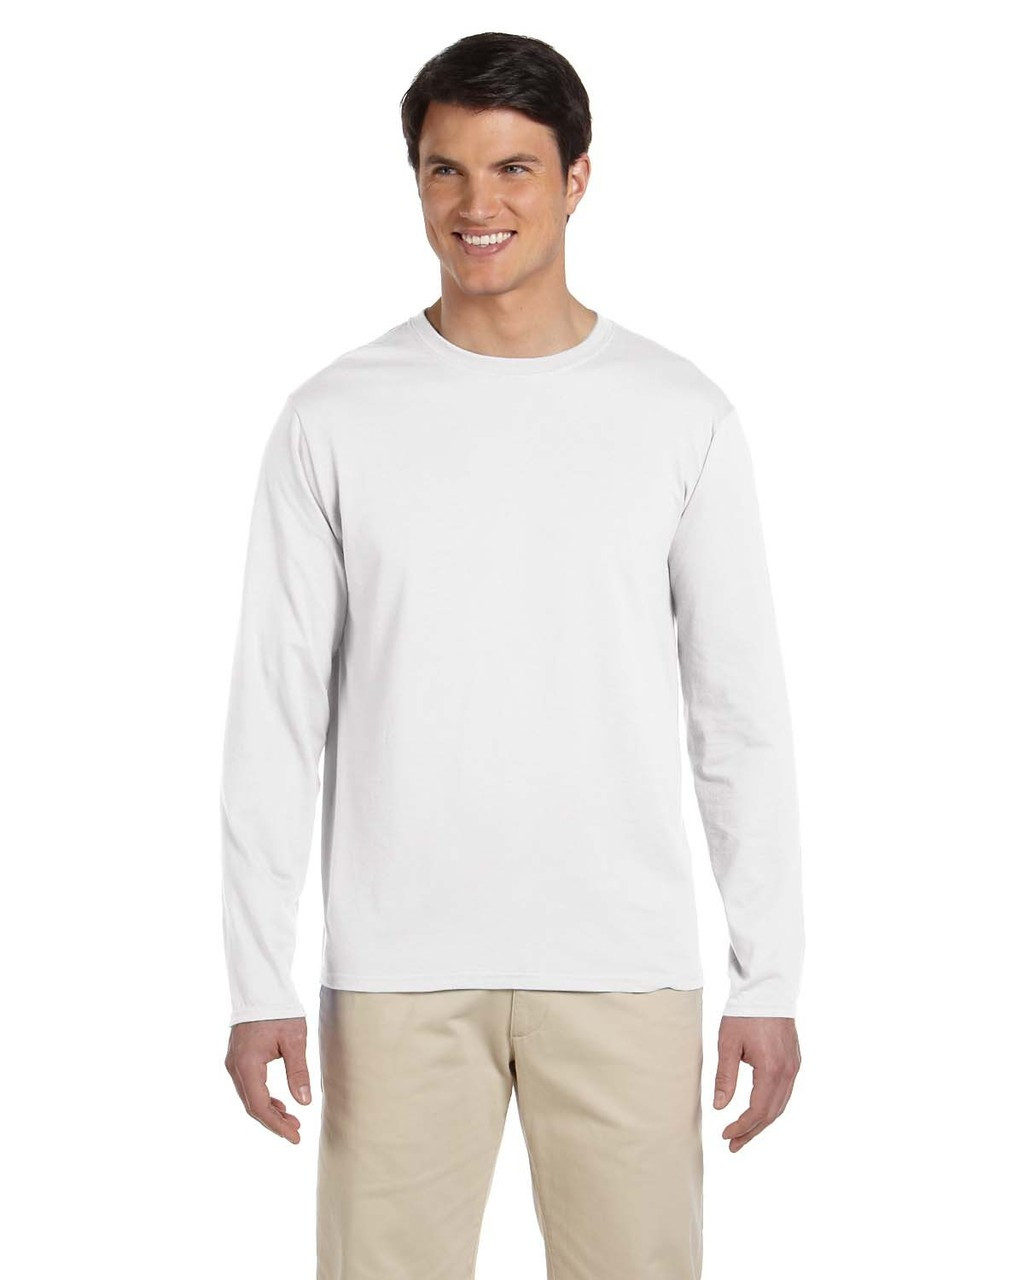 White - G644 SoftStyle Long Sleeve T-Shirt | Blankclothing.ca